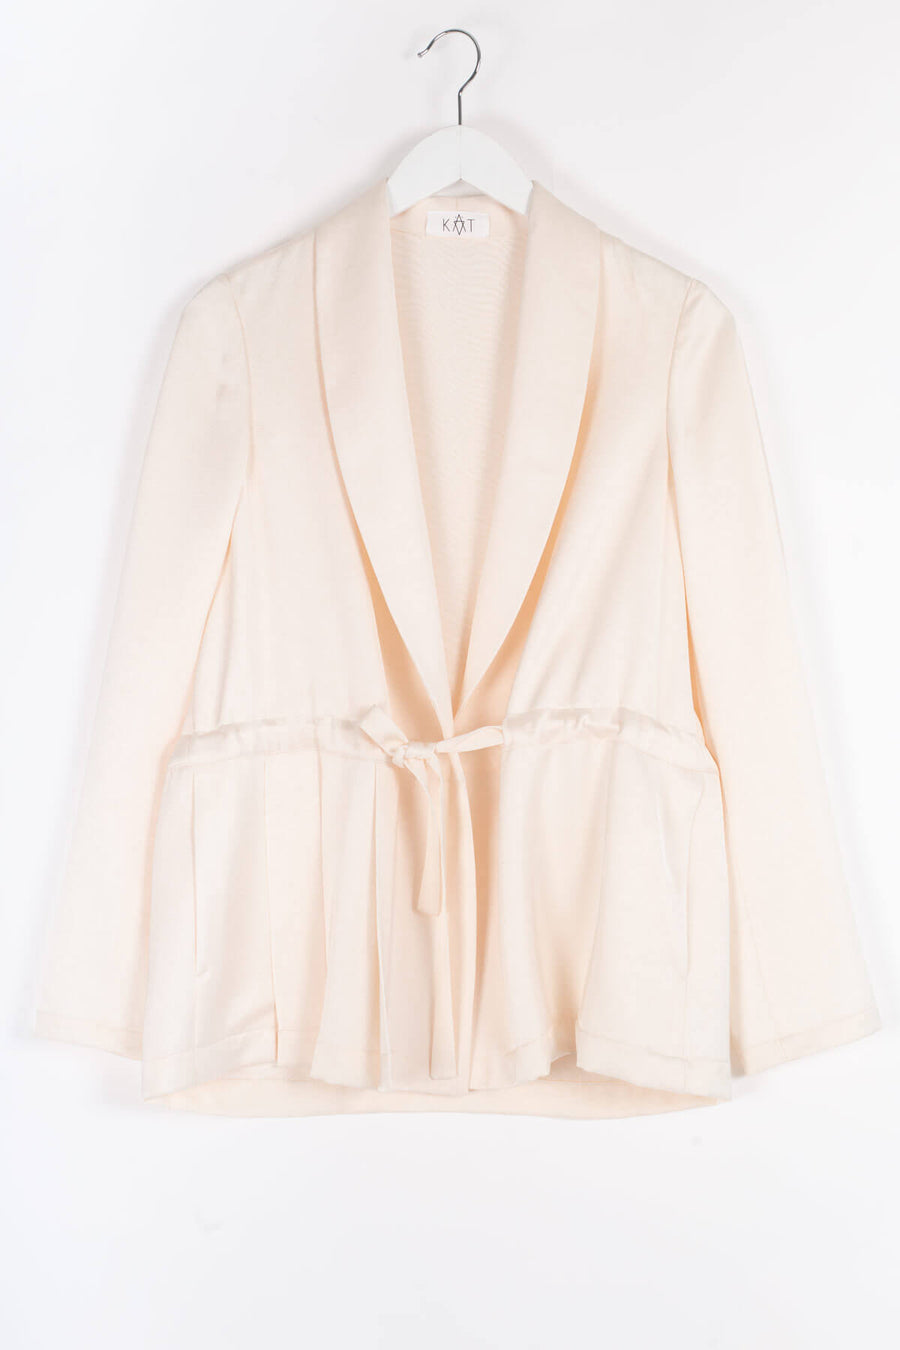 CURDIE Viscose Pleated Jacket - Ivory